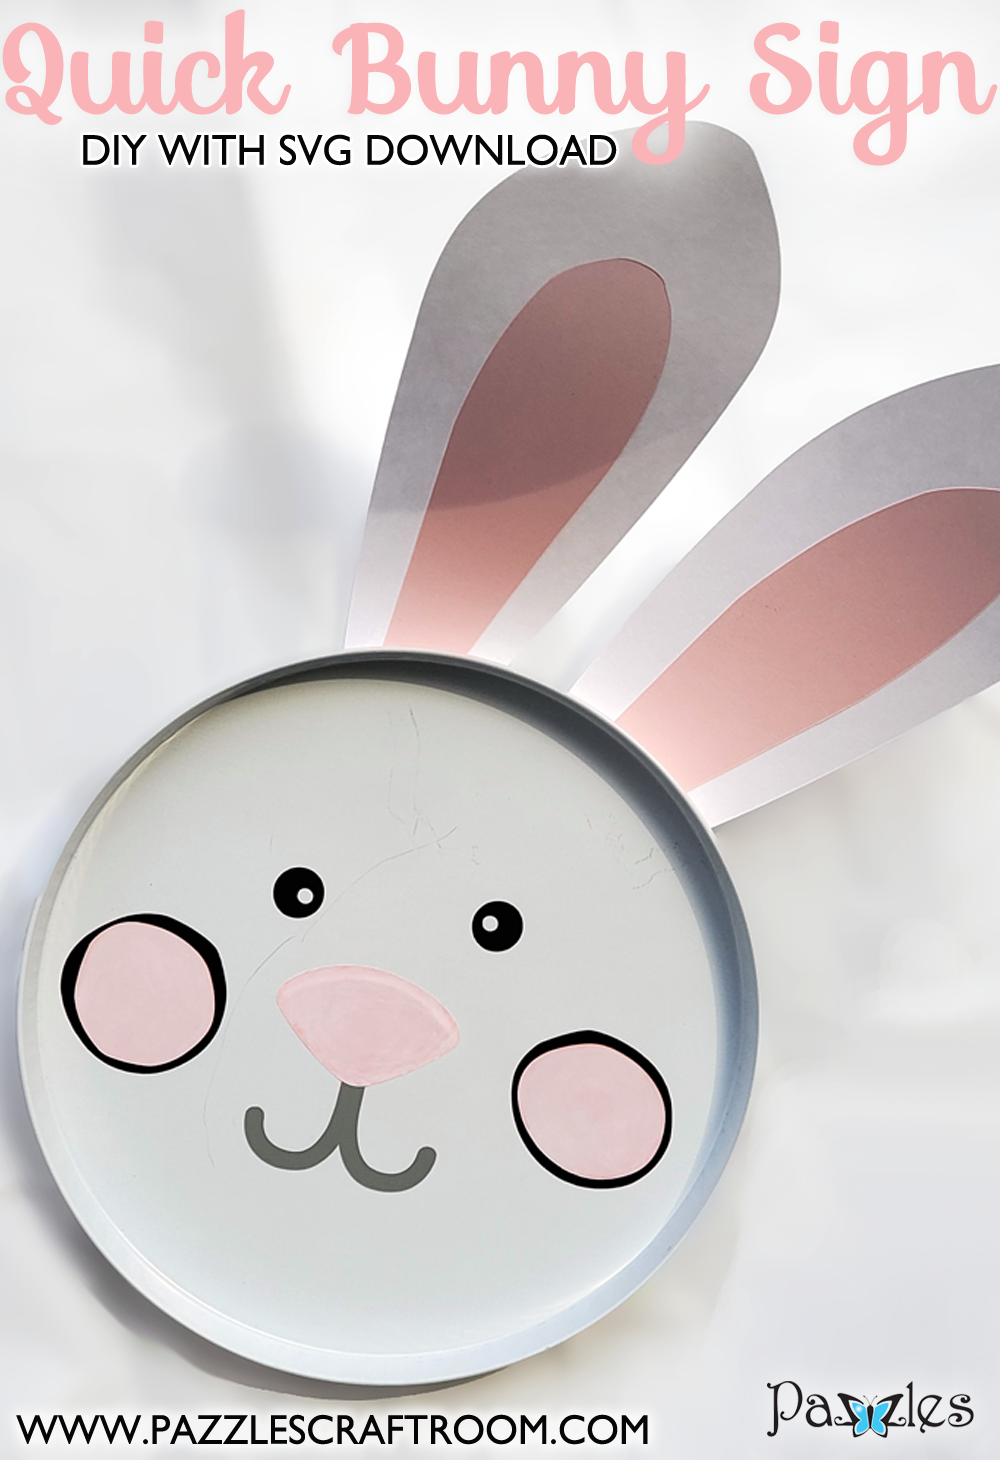 Pazzles DIY Bunny Decor Sign. Instant SVG download compatible with all major electronic cutters including Pazzles Inspiration, Cricut, and Silhouette Cameo. Design by Renee Smart.